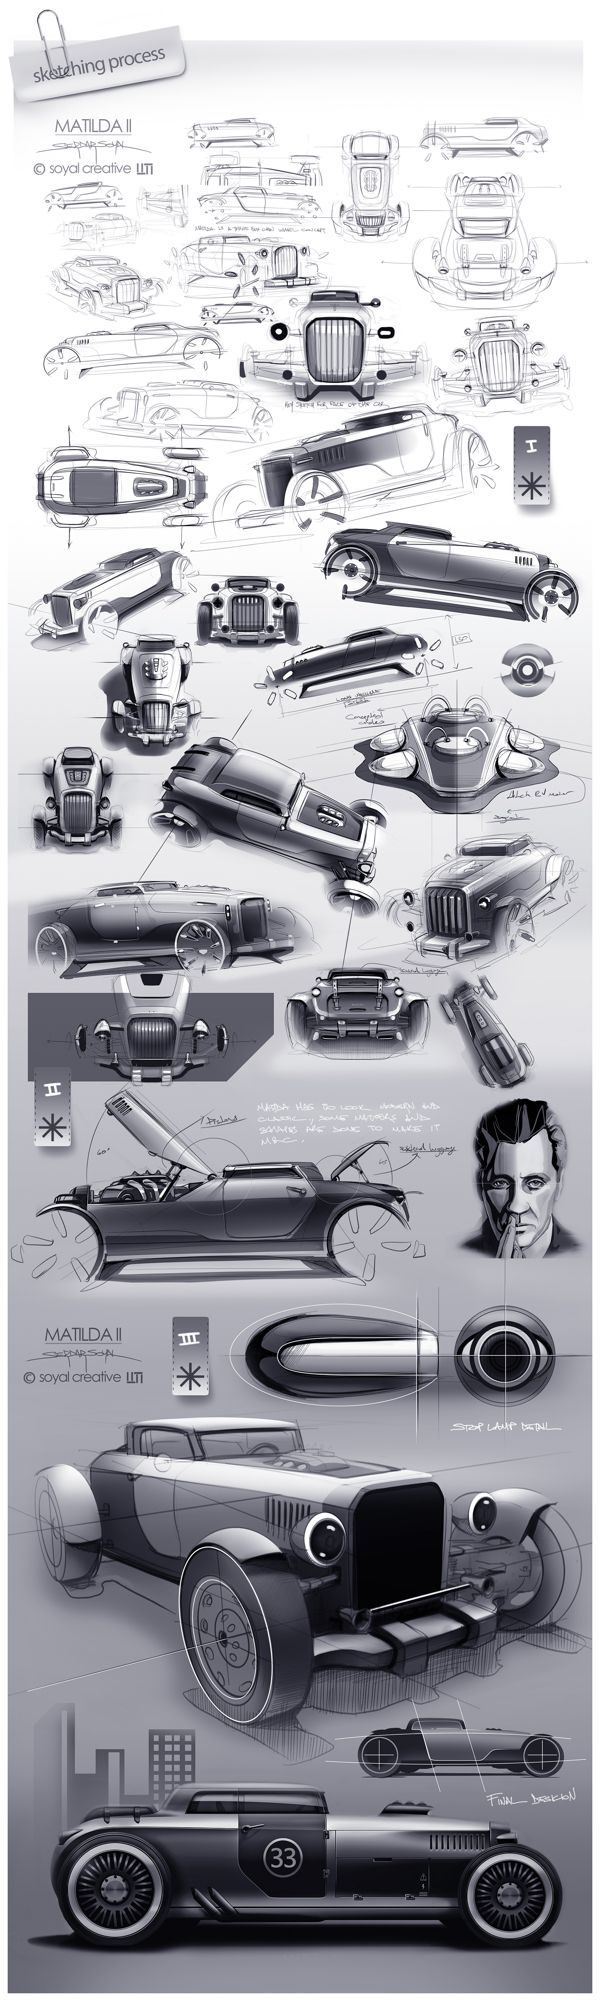 Ideas for my new street rod (More at pinterest.com/gary5mith/ideas-for-my-new-street-rod/)  : Matilda II by Serdar Soyal, via Behance